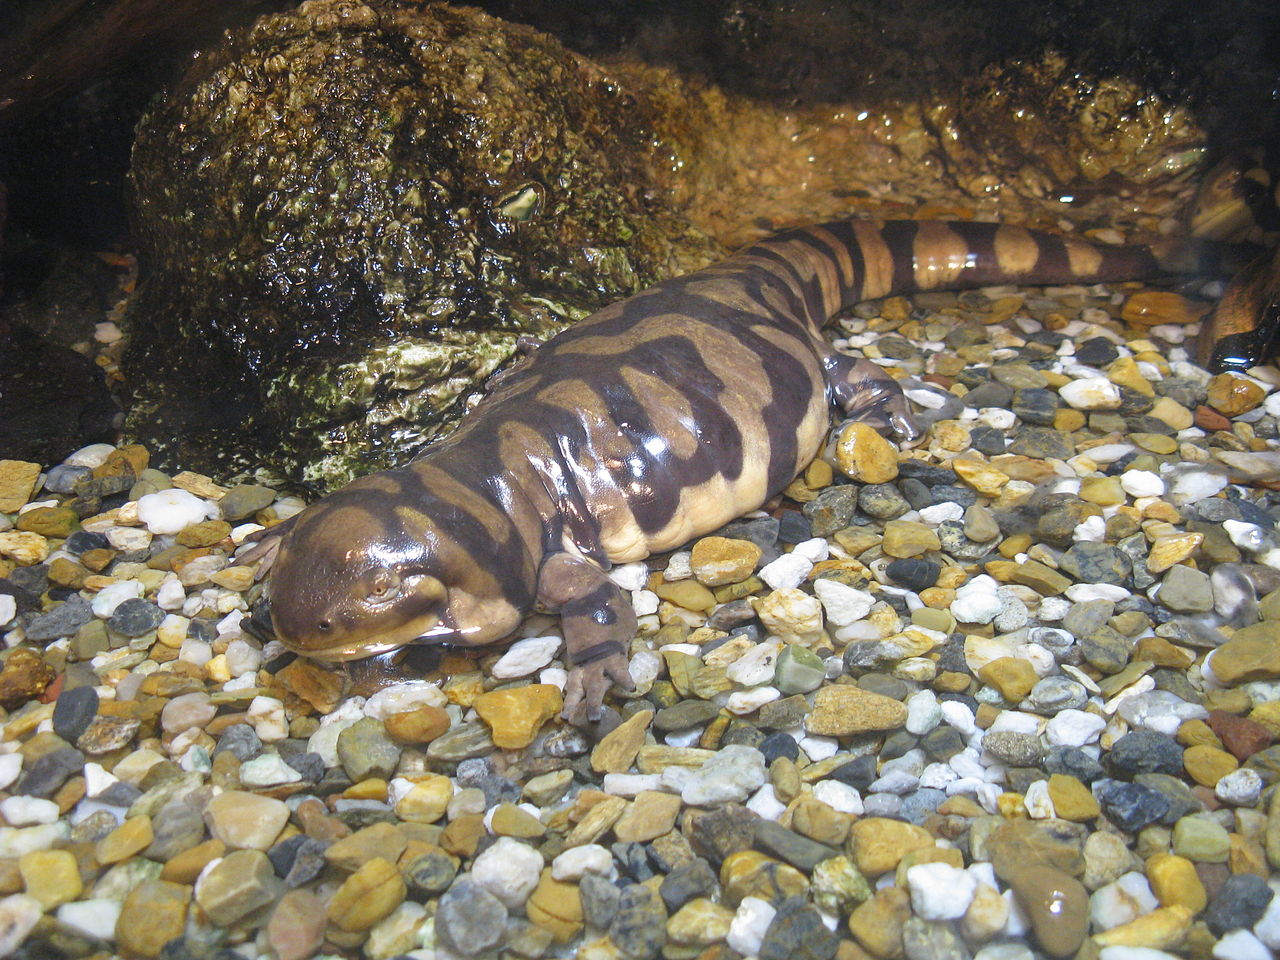 Barred tiger salamander by KENPEI Wikimedia Commons